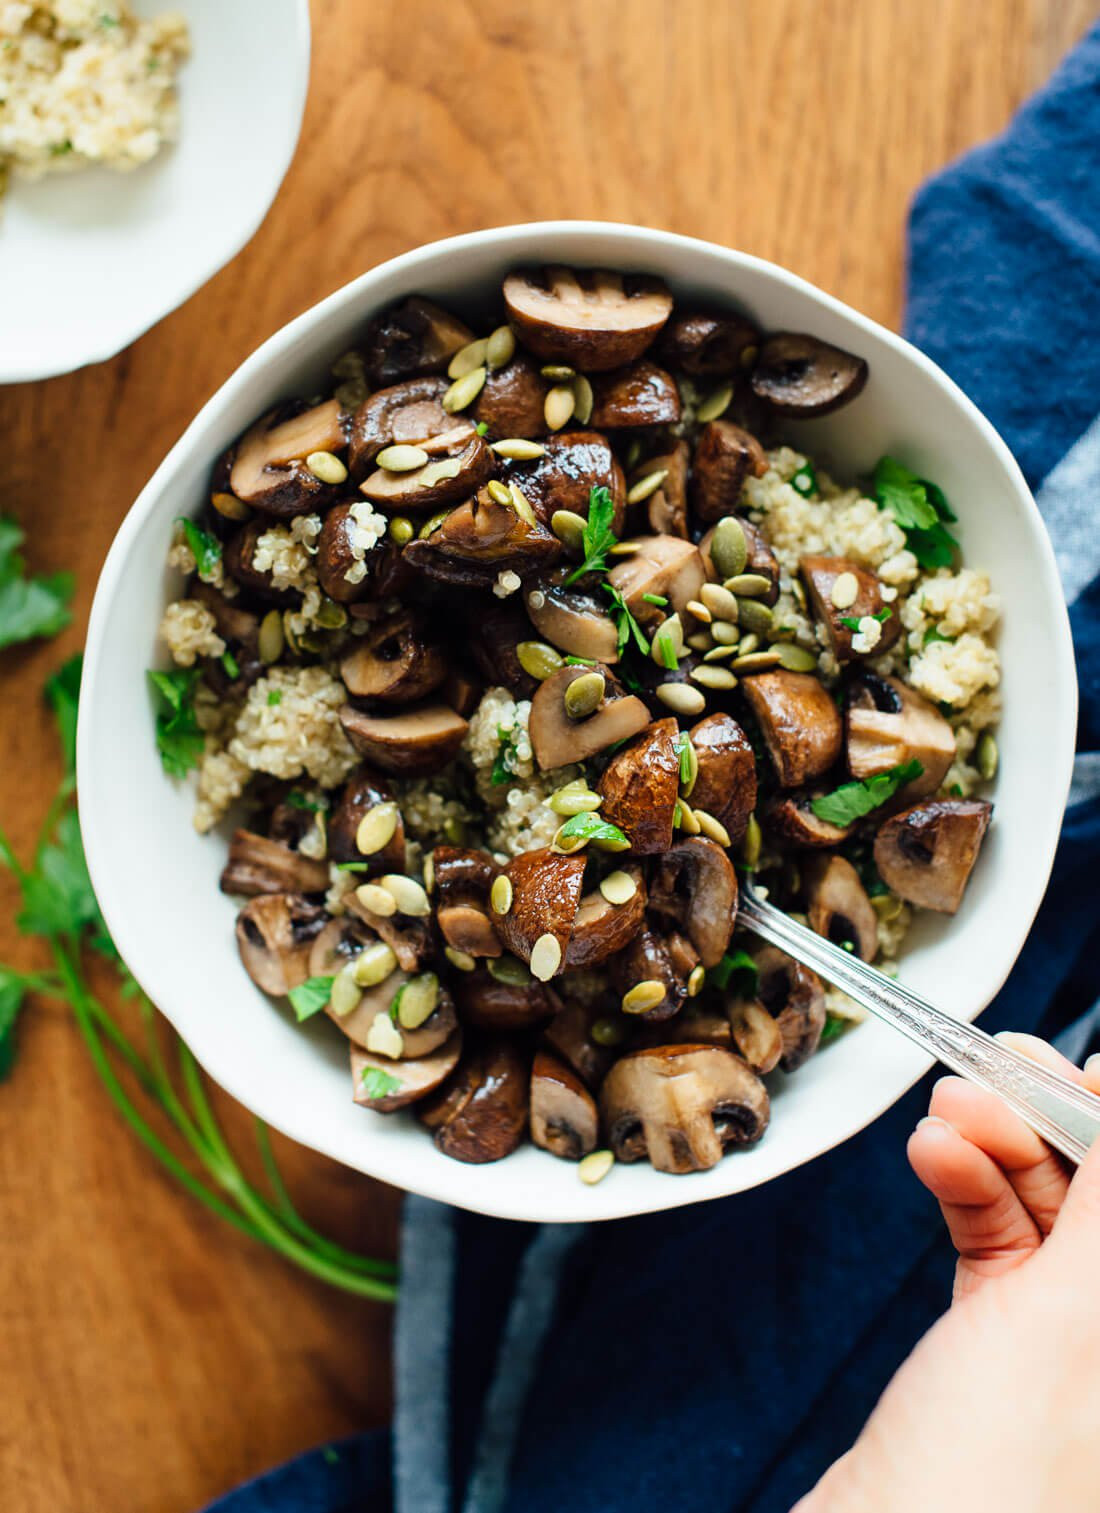 Healthy Mushroom Side Dish  Roasted Mushrooms with Herbed Quinoa Cookie and Kate